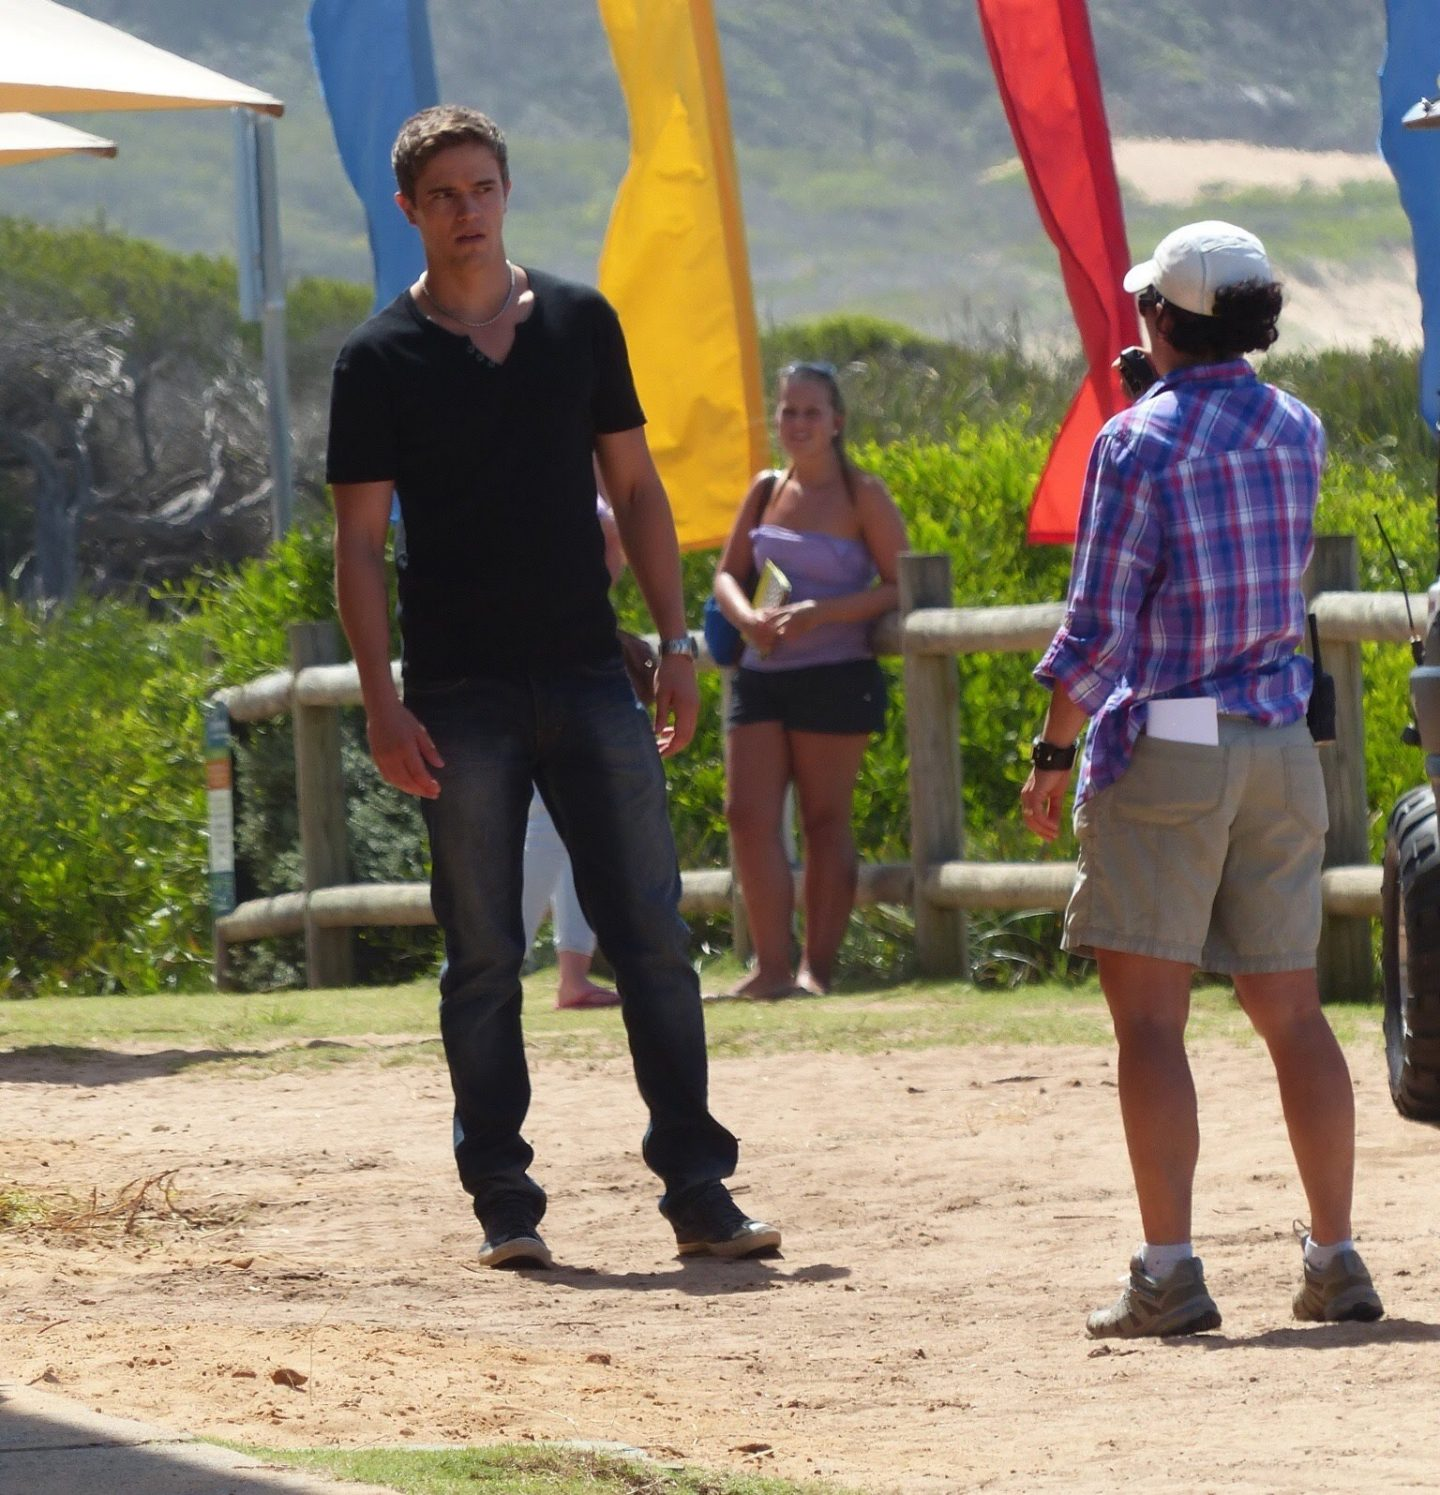 Kyle Braxton from Home and Away